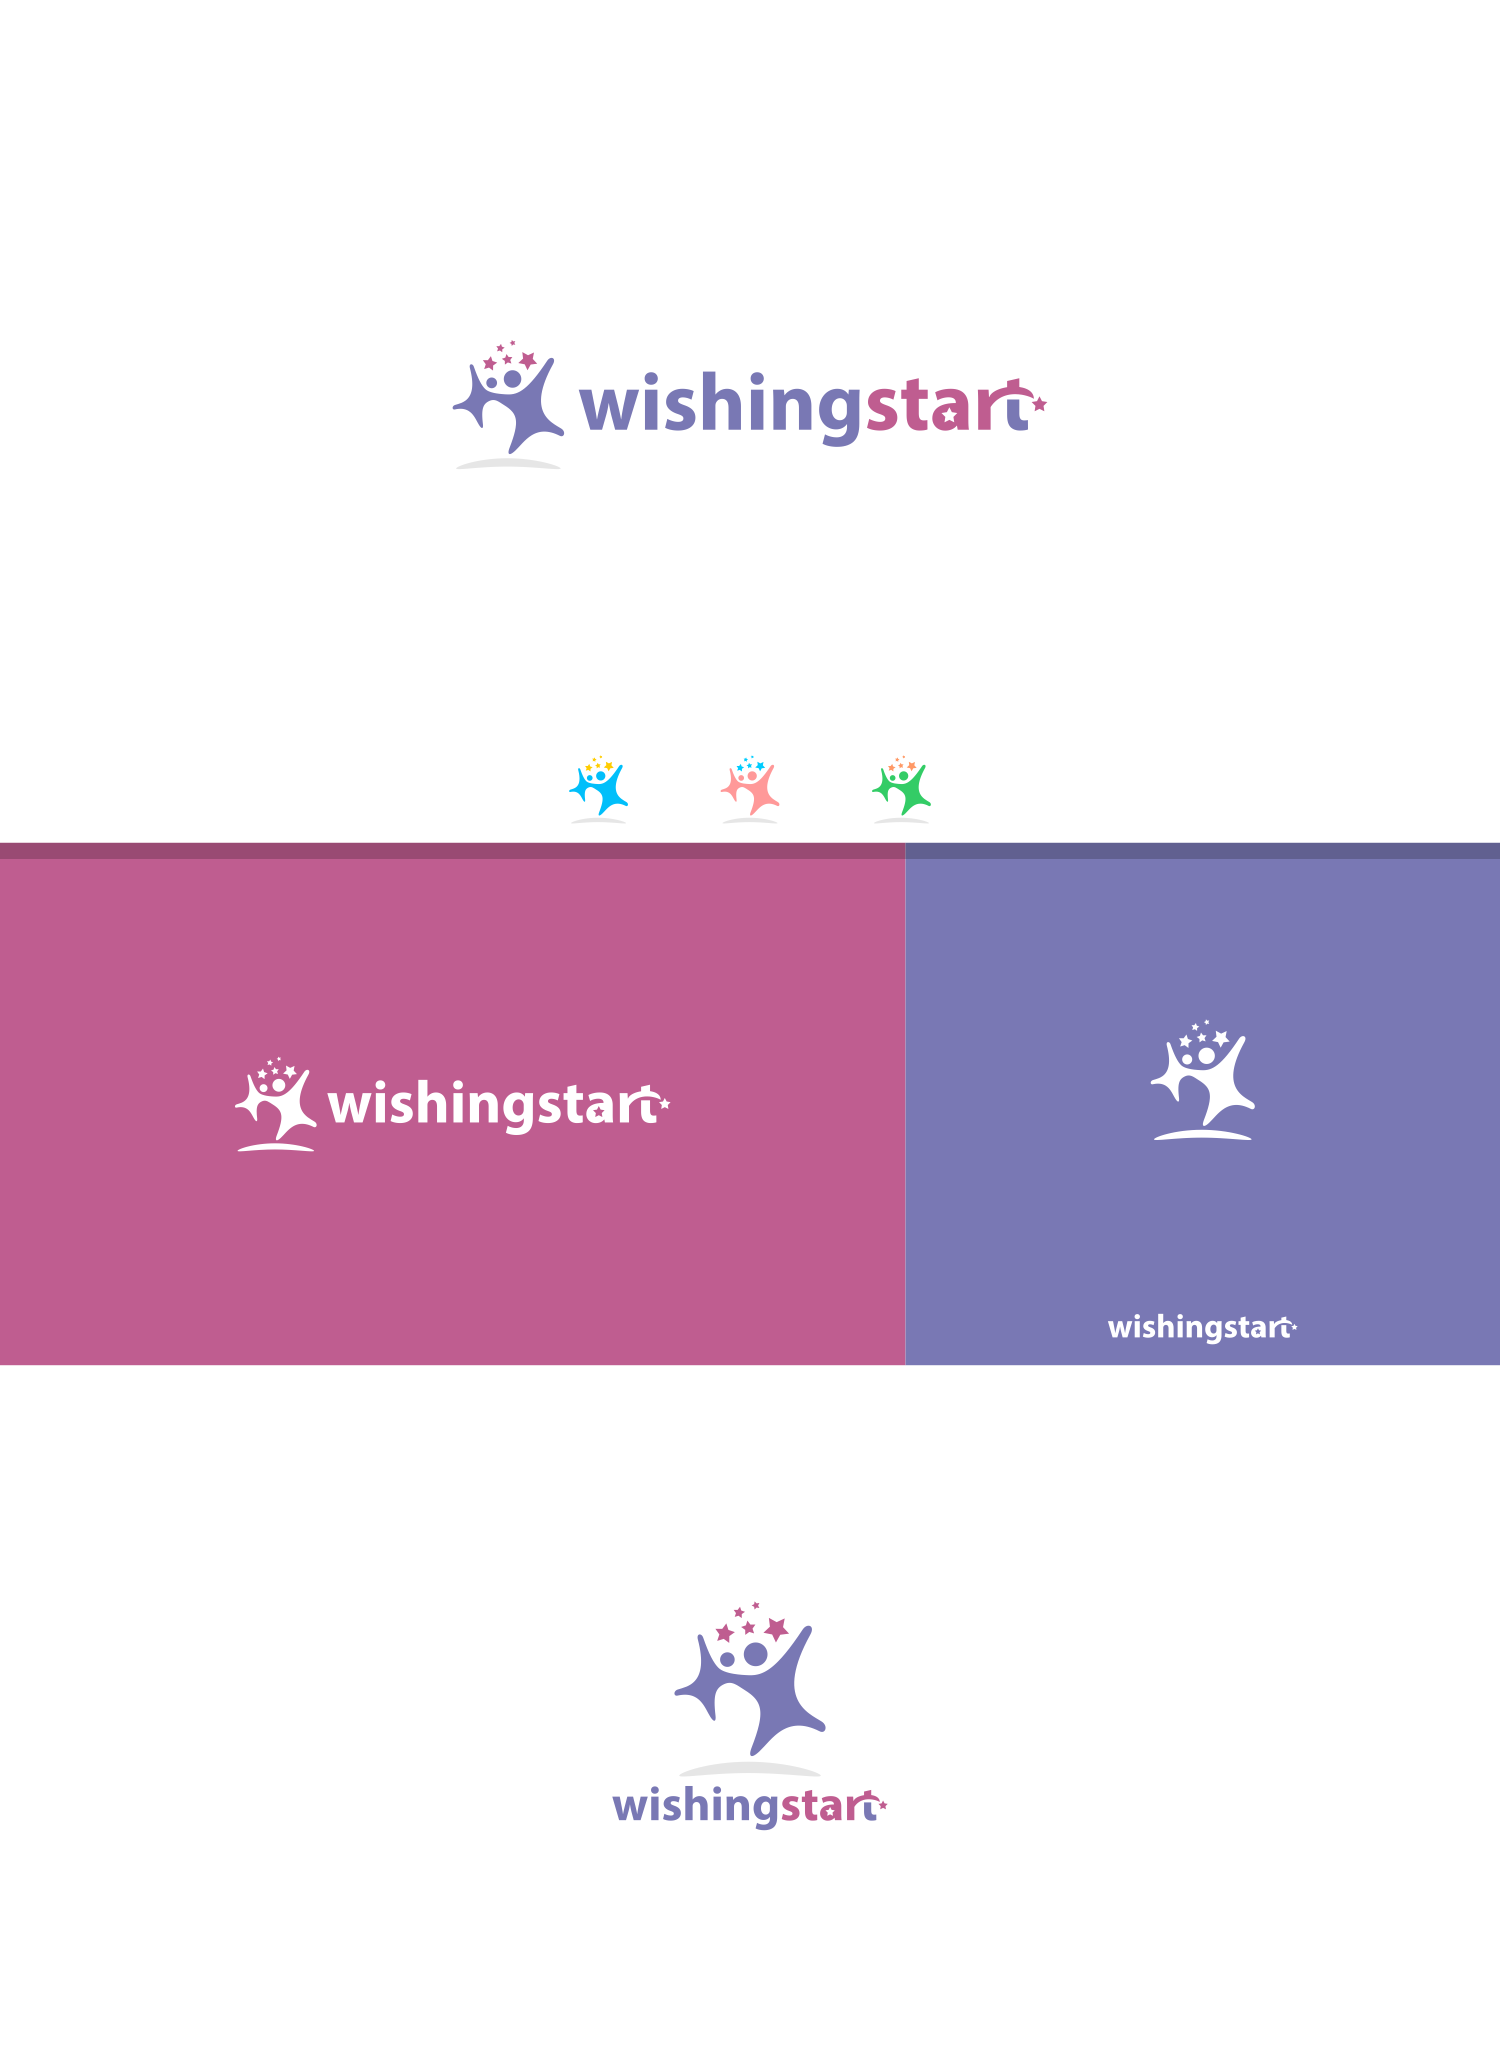 Create the next logo and business card for Wishingstart Business